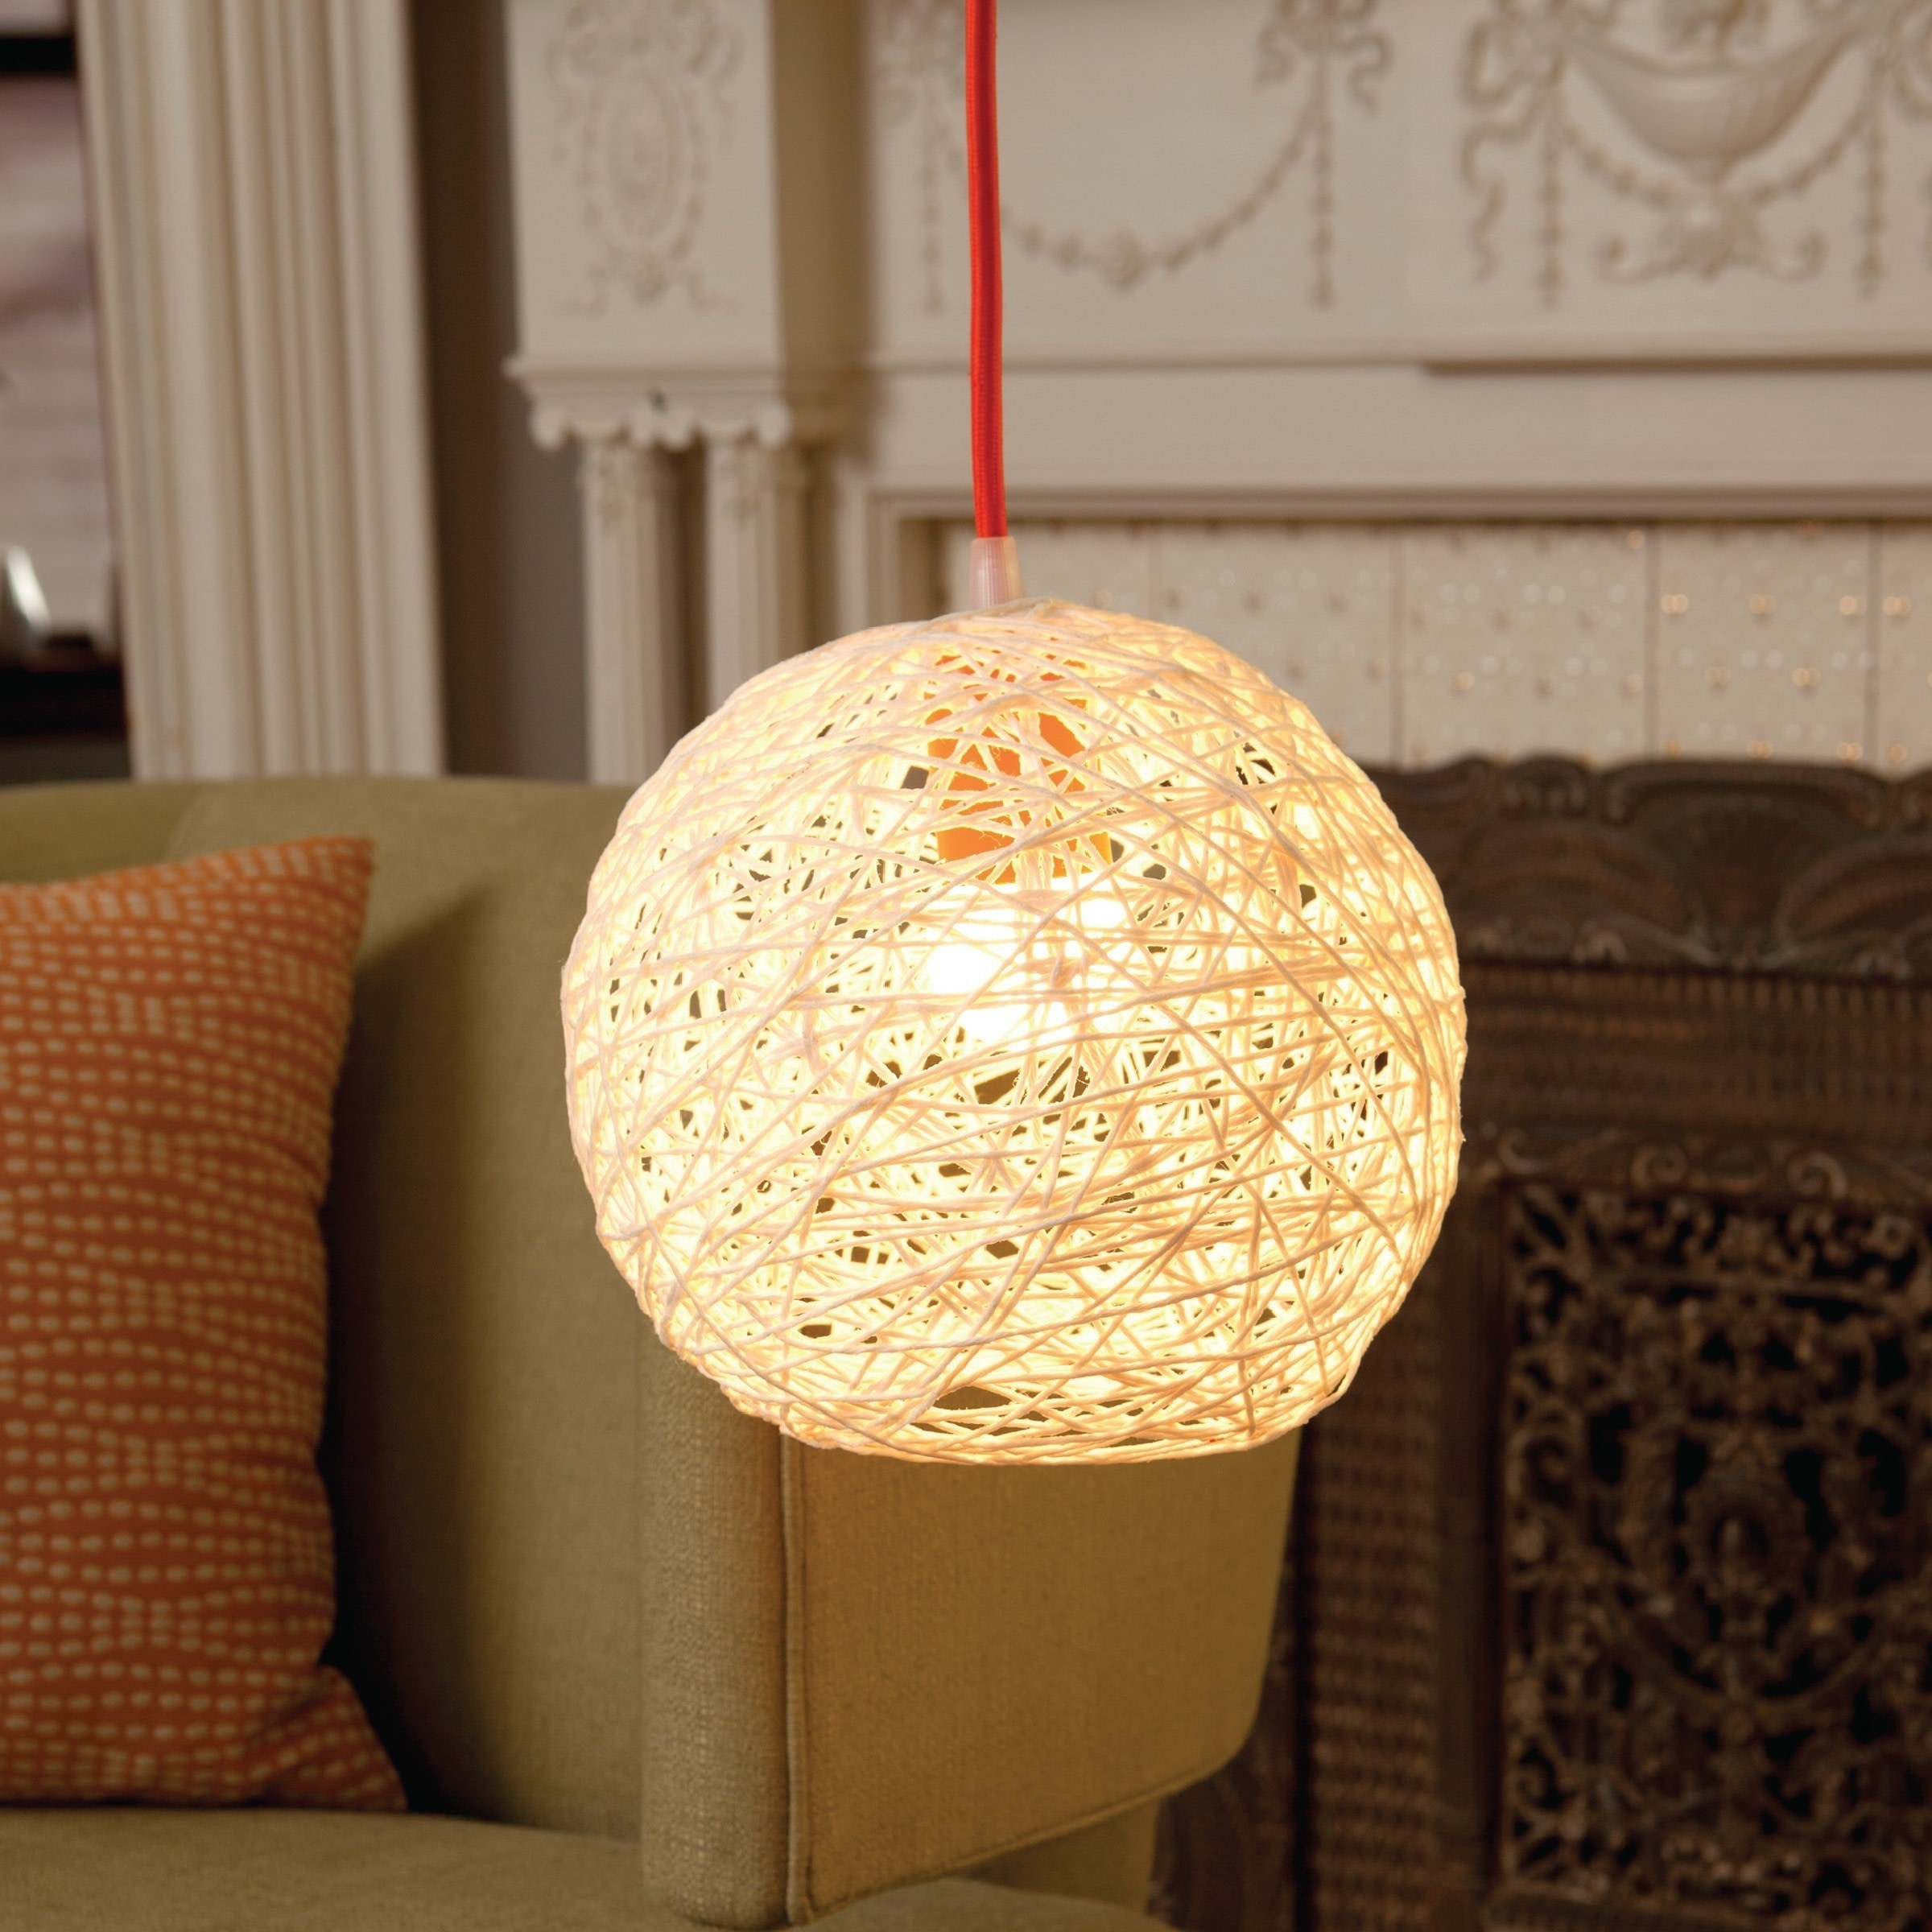 String Art Lampshade · Extract from Knitless by Laura McFadden · How ... for Craft Lamp Making  76uhy